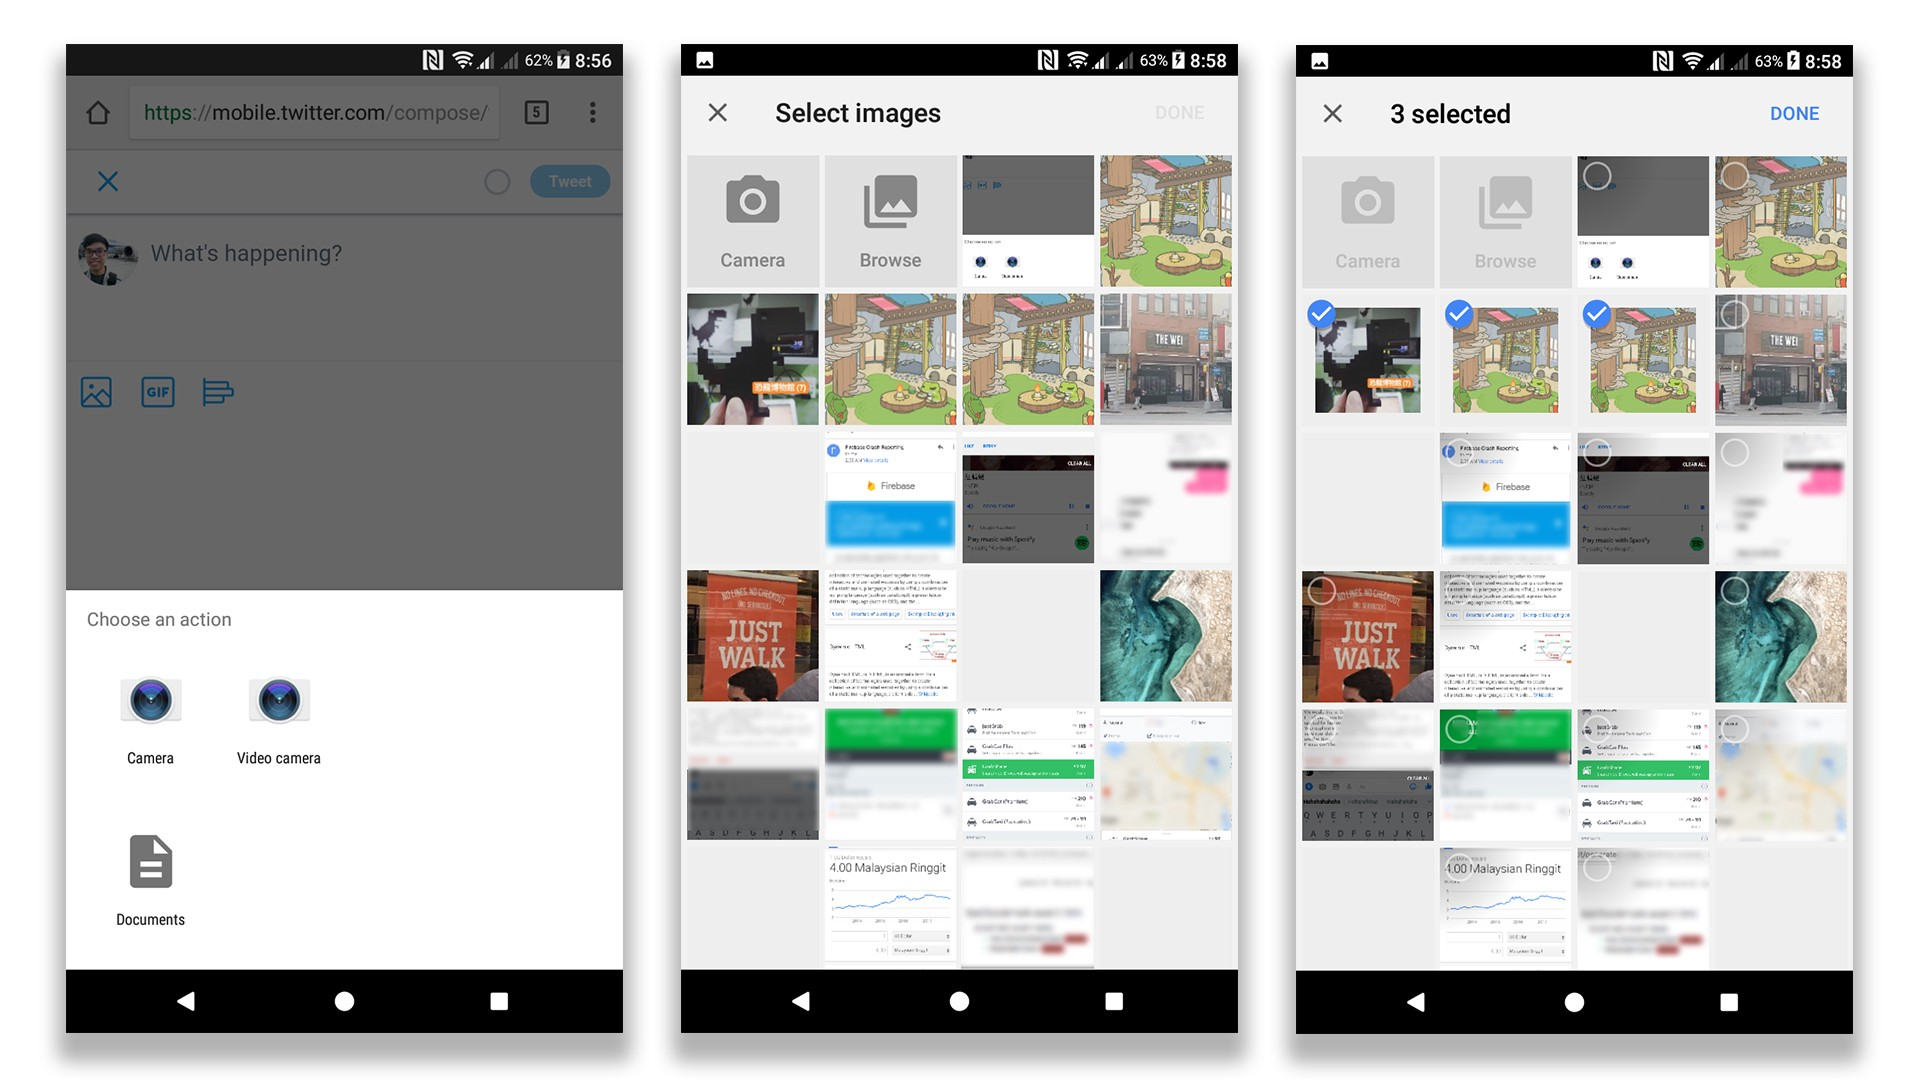 New Photo Picker in Chrome 64 Beta - Henry Lim - Medium